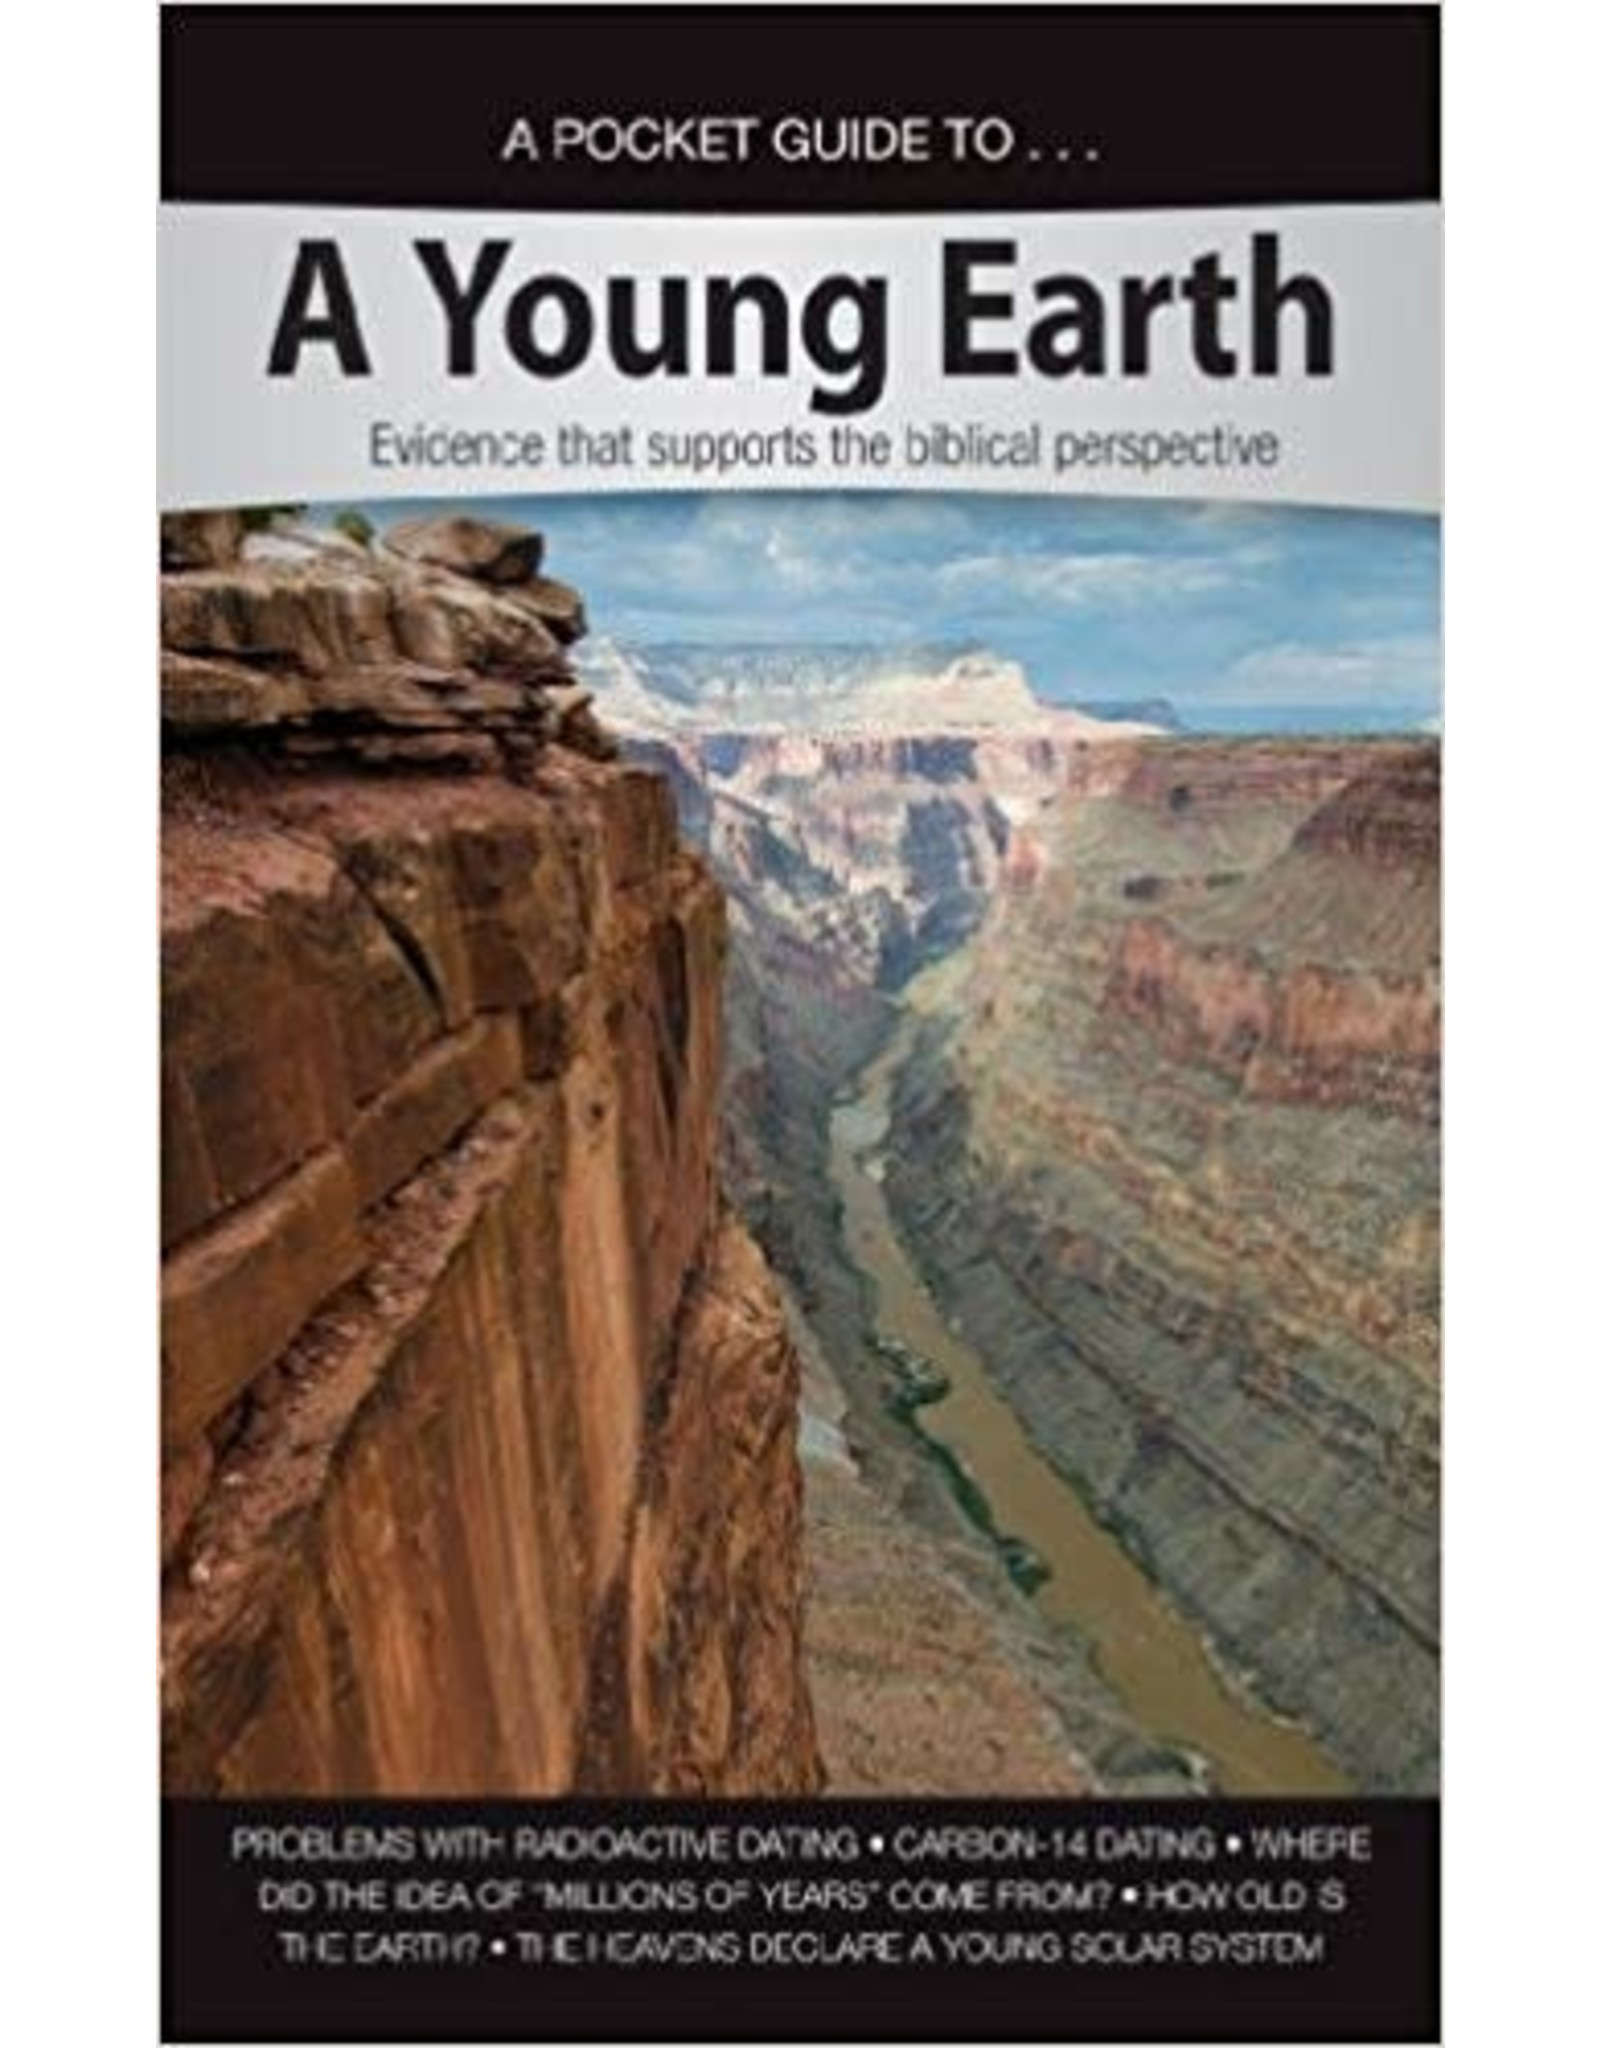 A Pocket Guide To A Young Earth